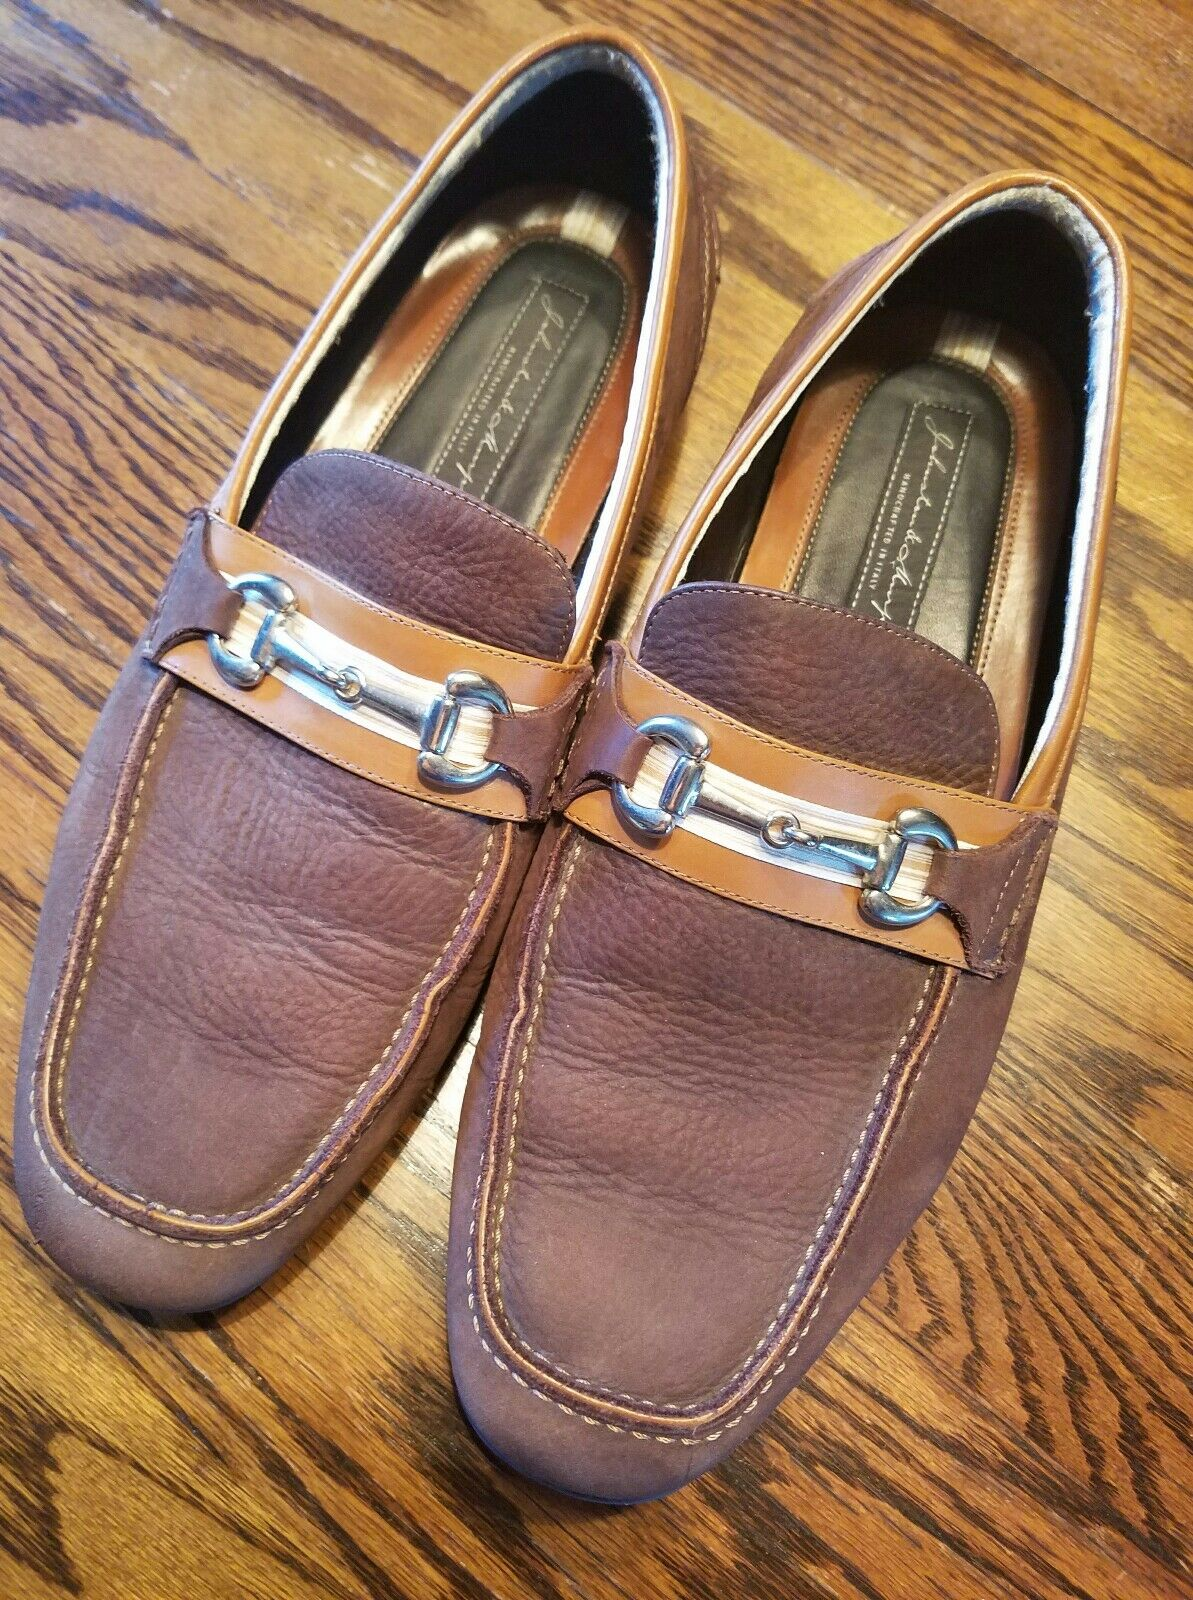 JOHNSTON & 11 MURPHY DRESS SHOES MENS 11 & BUCKLE LOAFERS LEATHER MADE IN ITALY 093c80